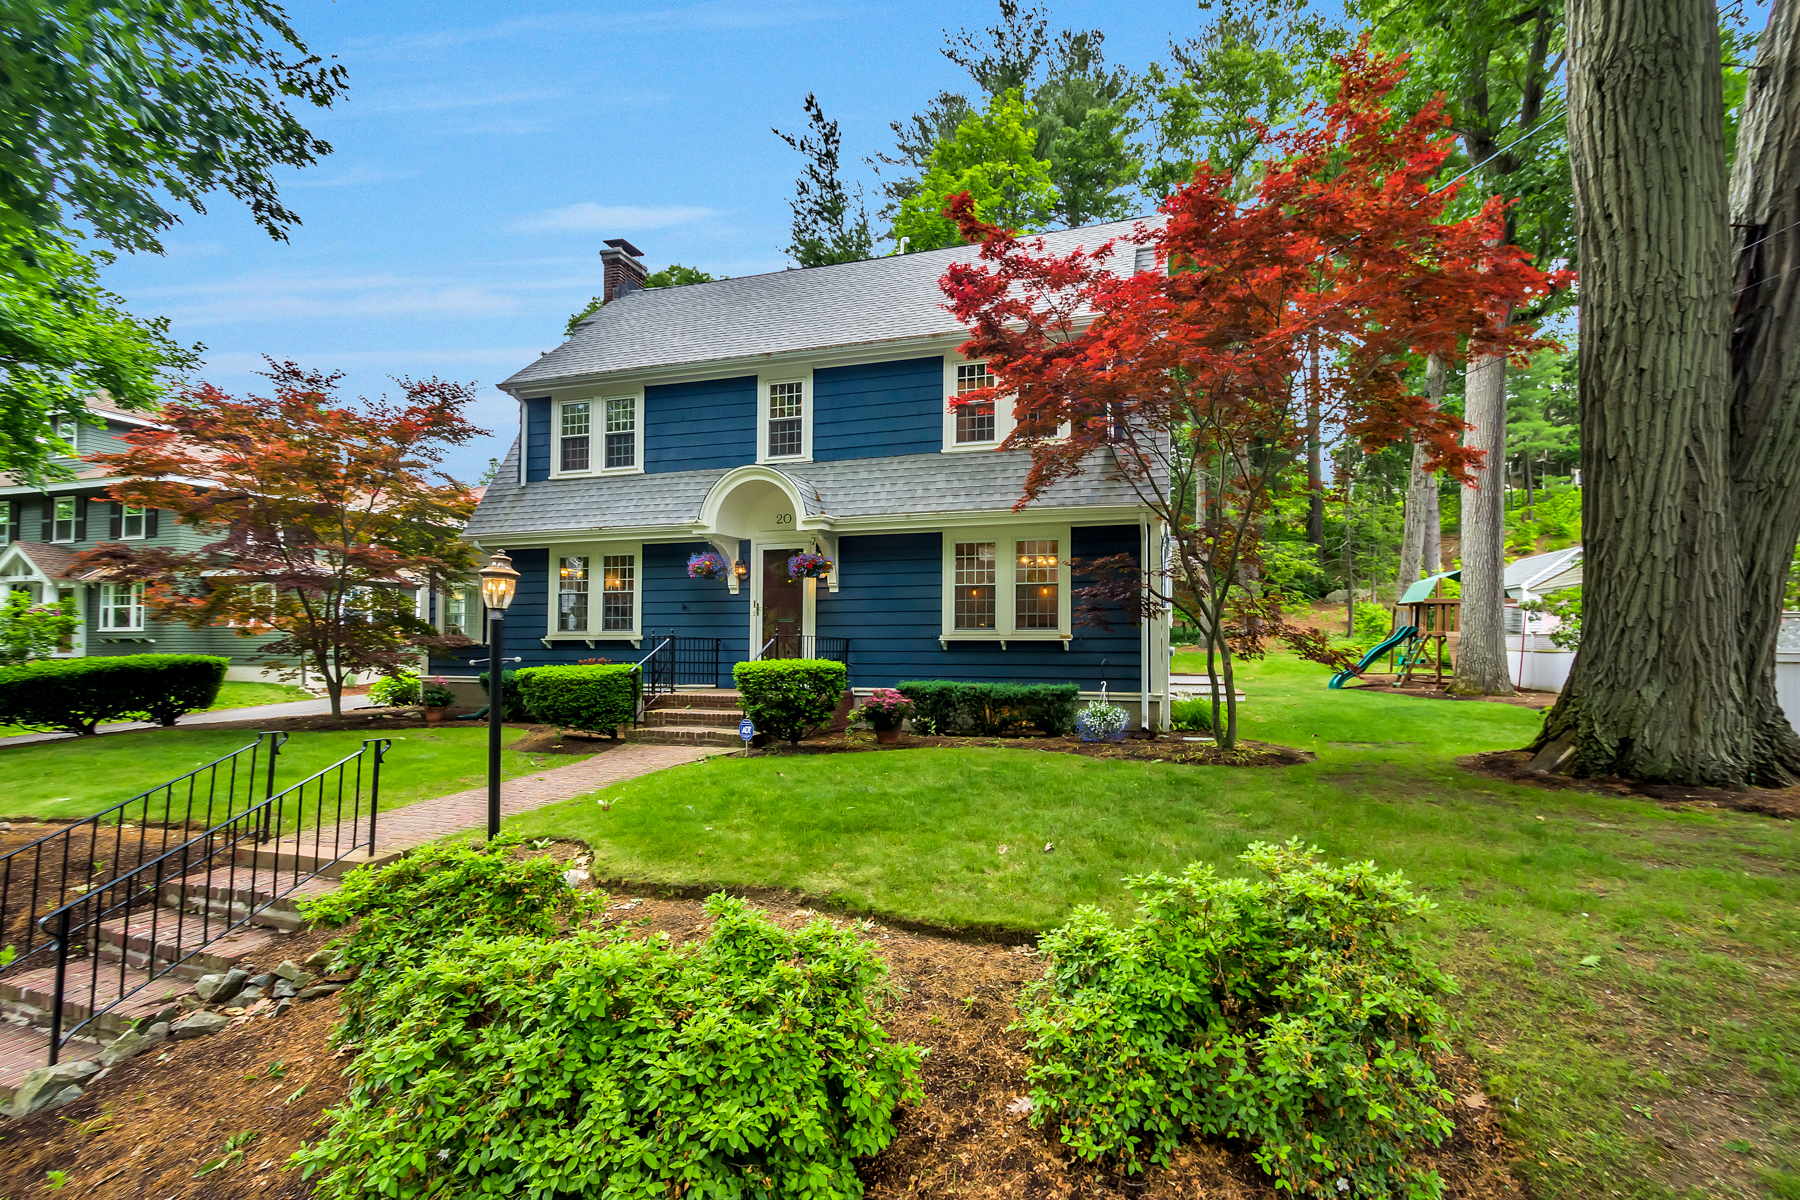 Single Family Home for Sale at Newly Renovated 4 Bed 20 Mason St Winchester, Massachusetts 01890 United States